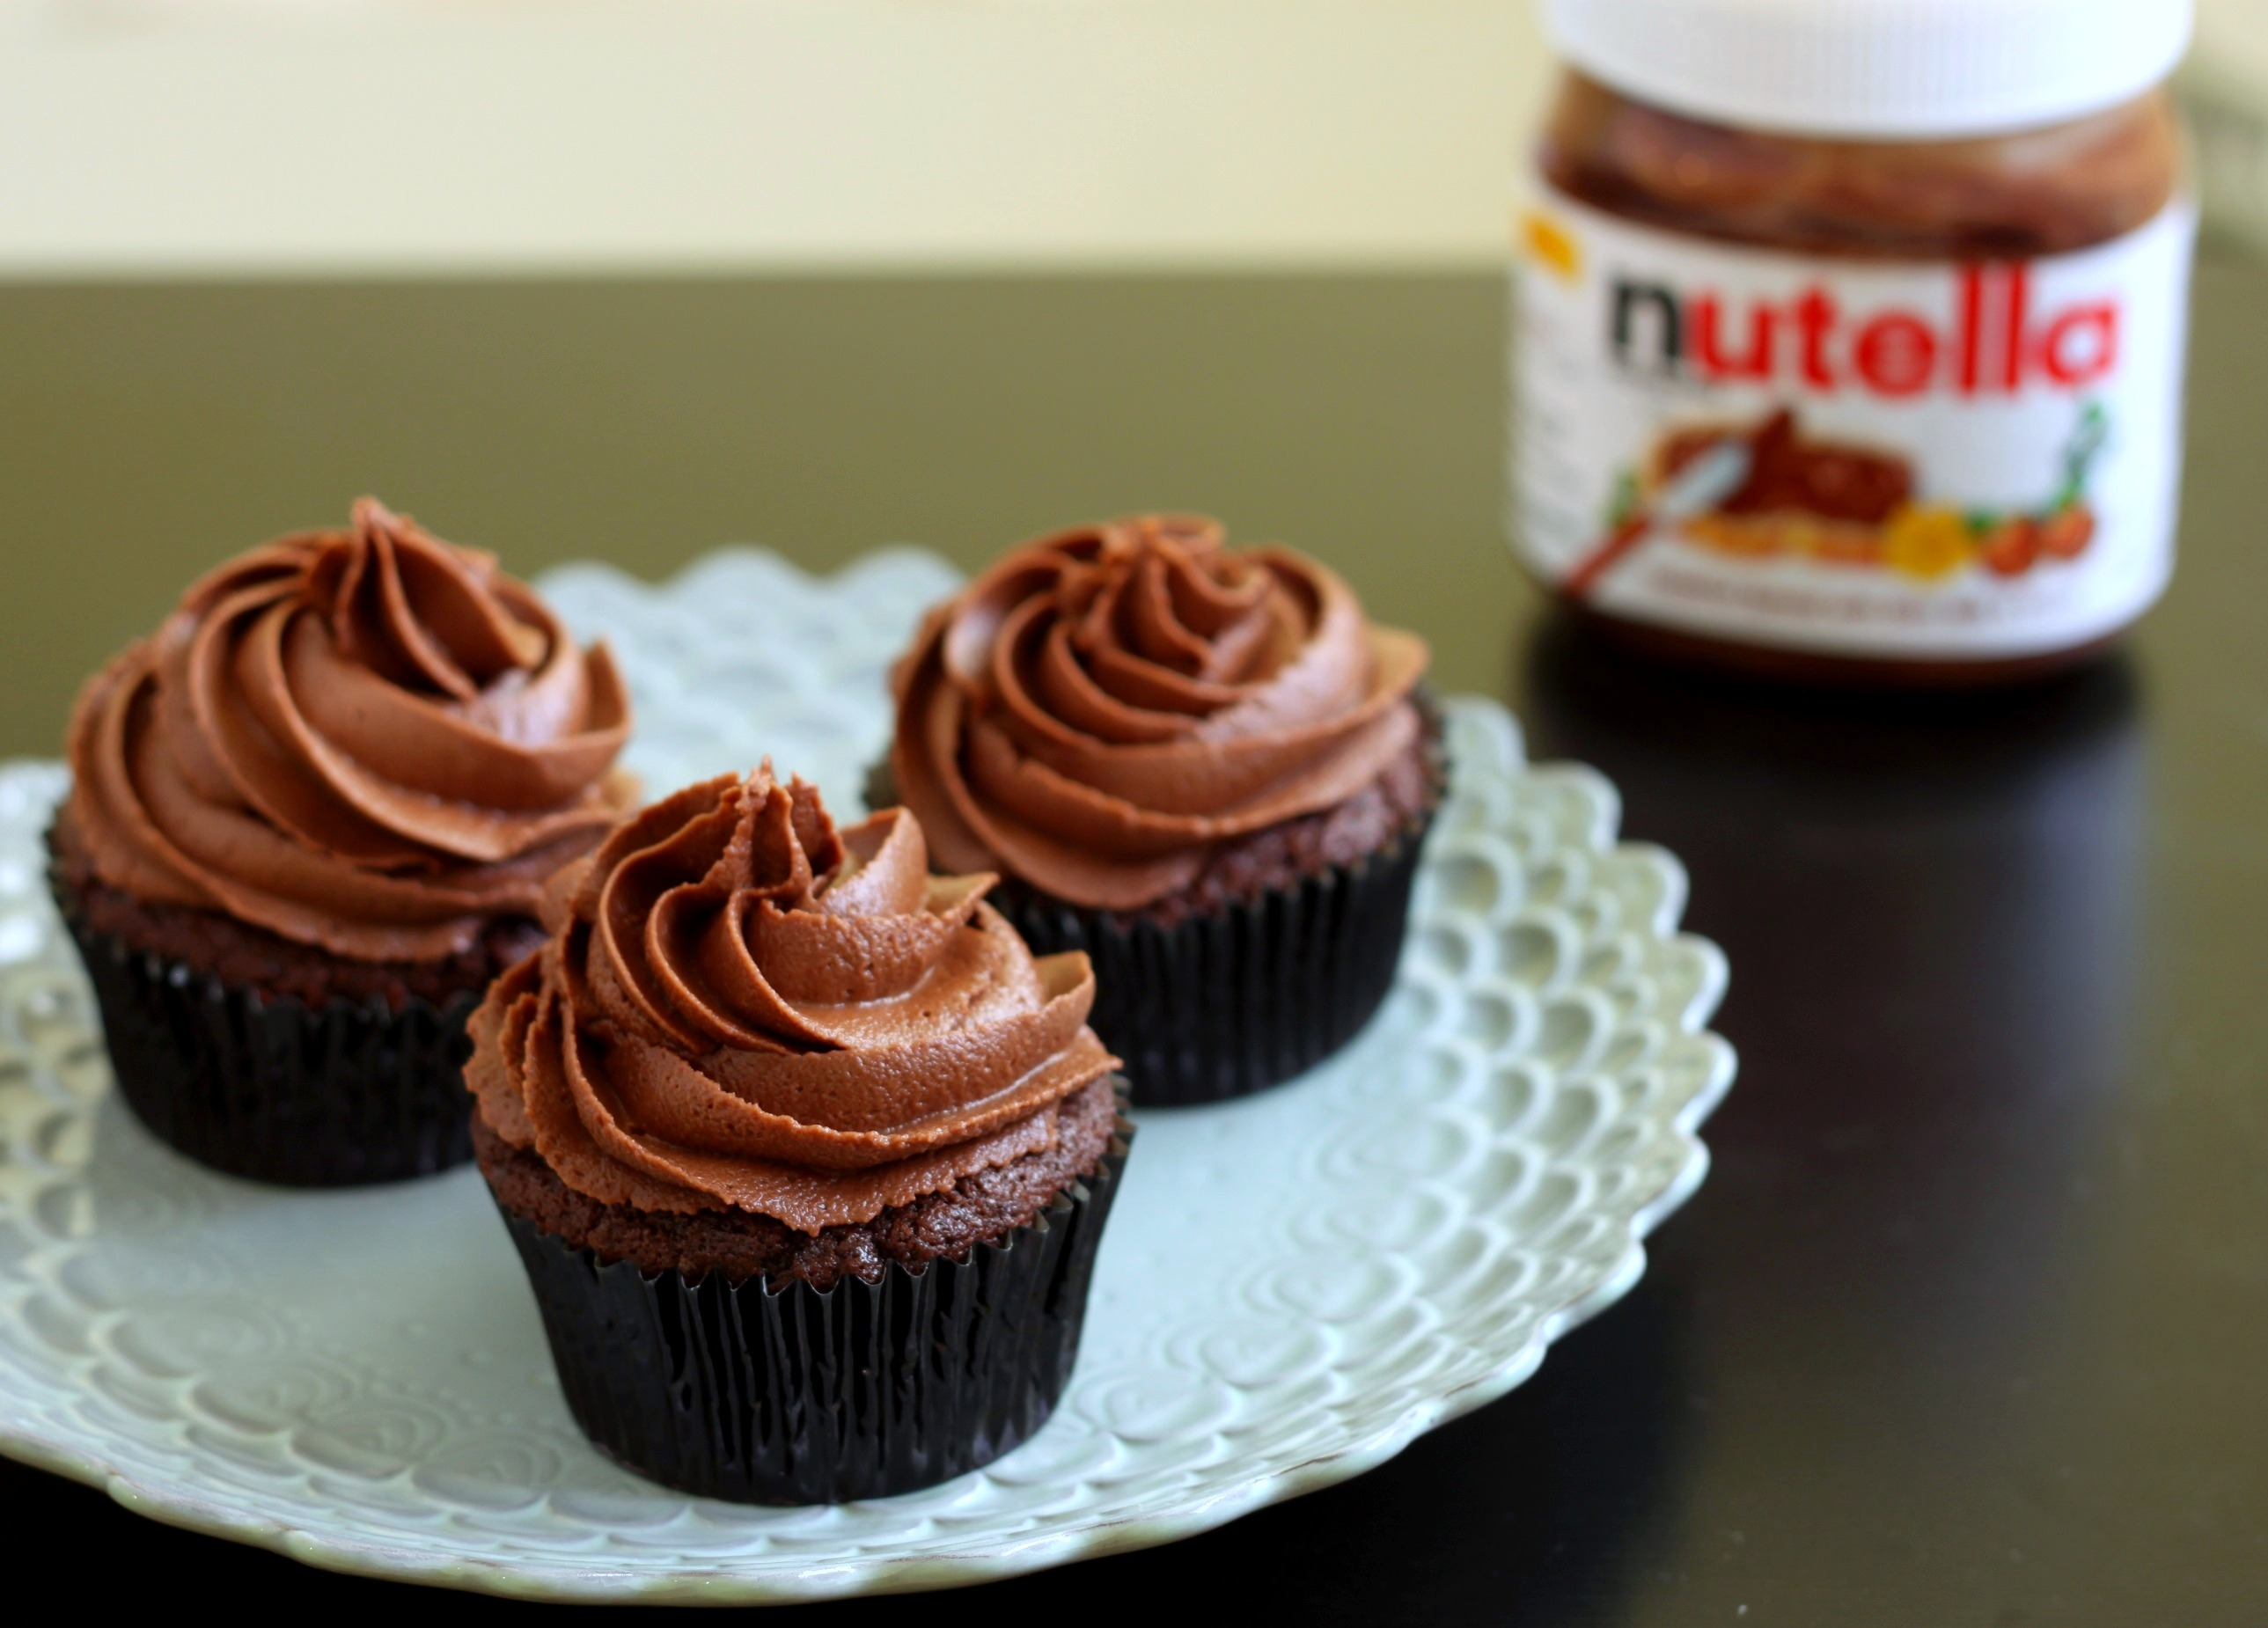 Chocolate-Nutella-Cupcakes-3-3